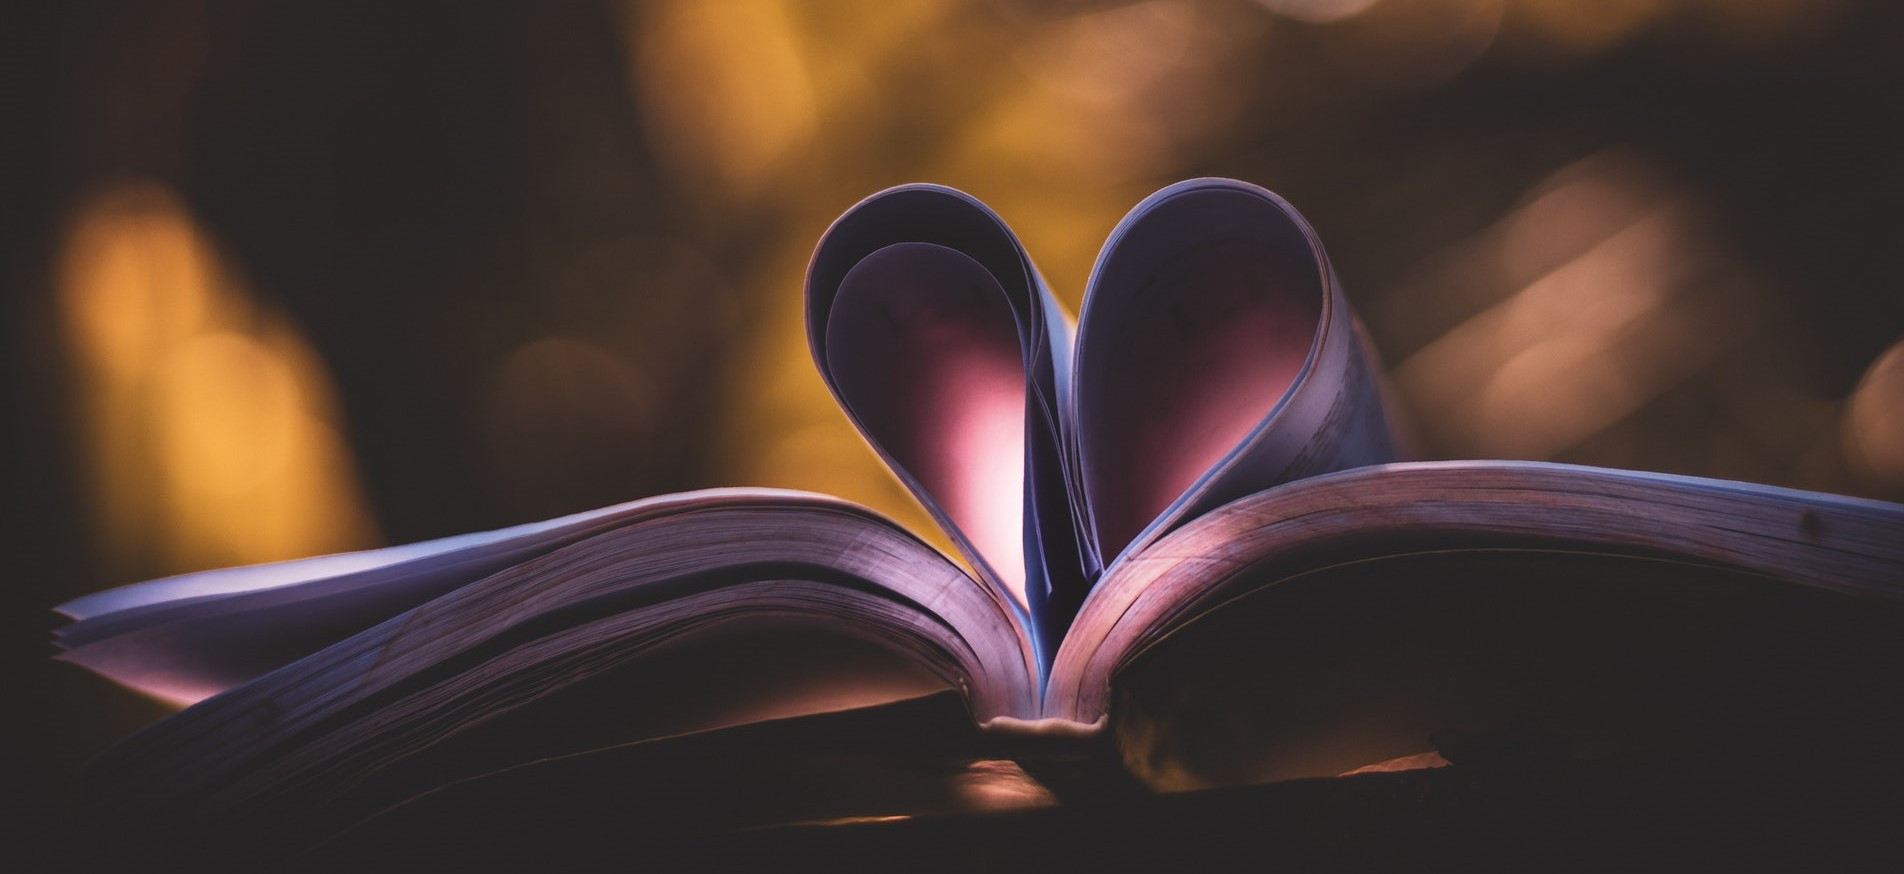 Open book with pages folded in the shape of a love heart